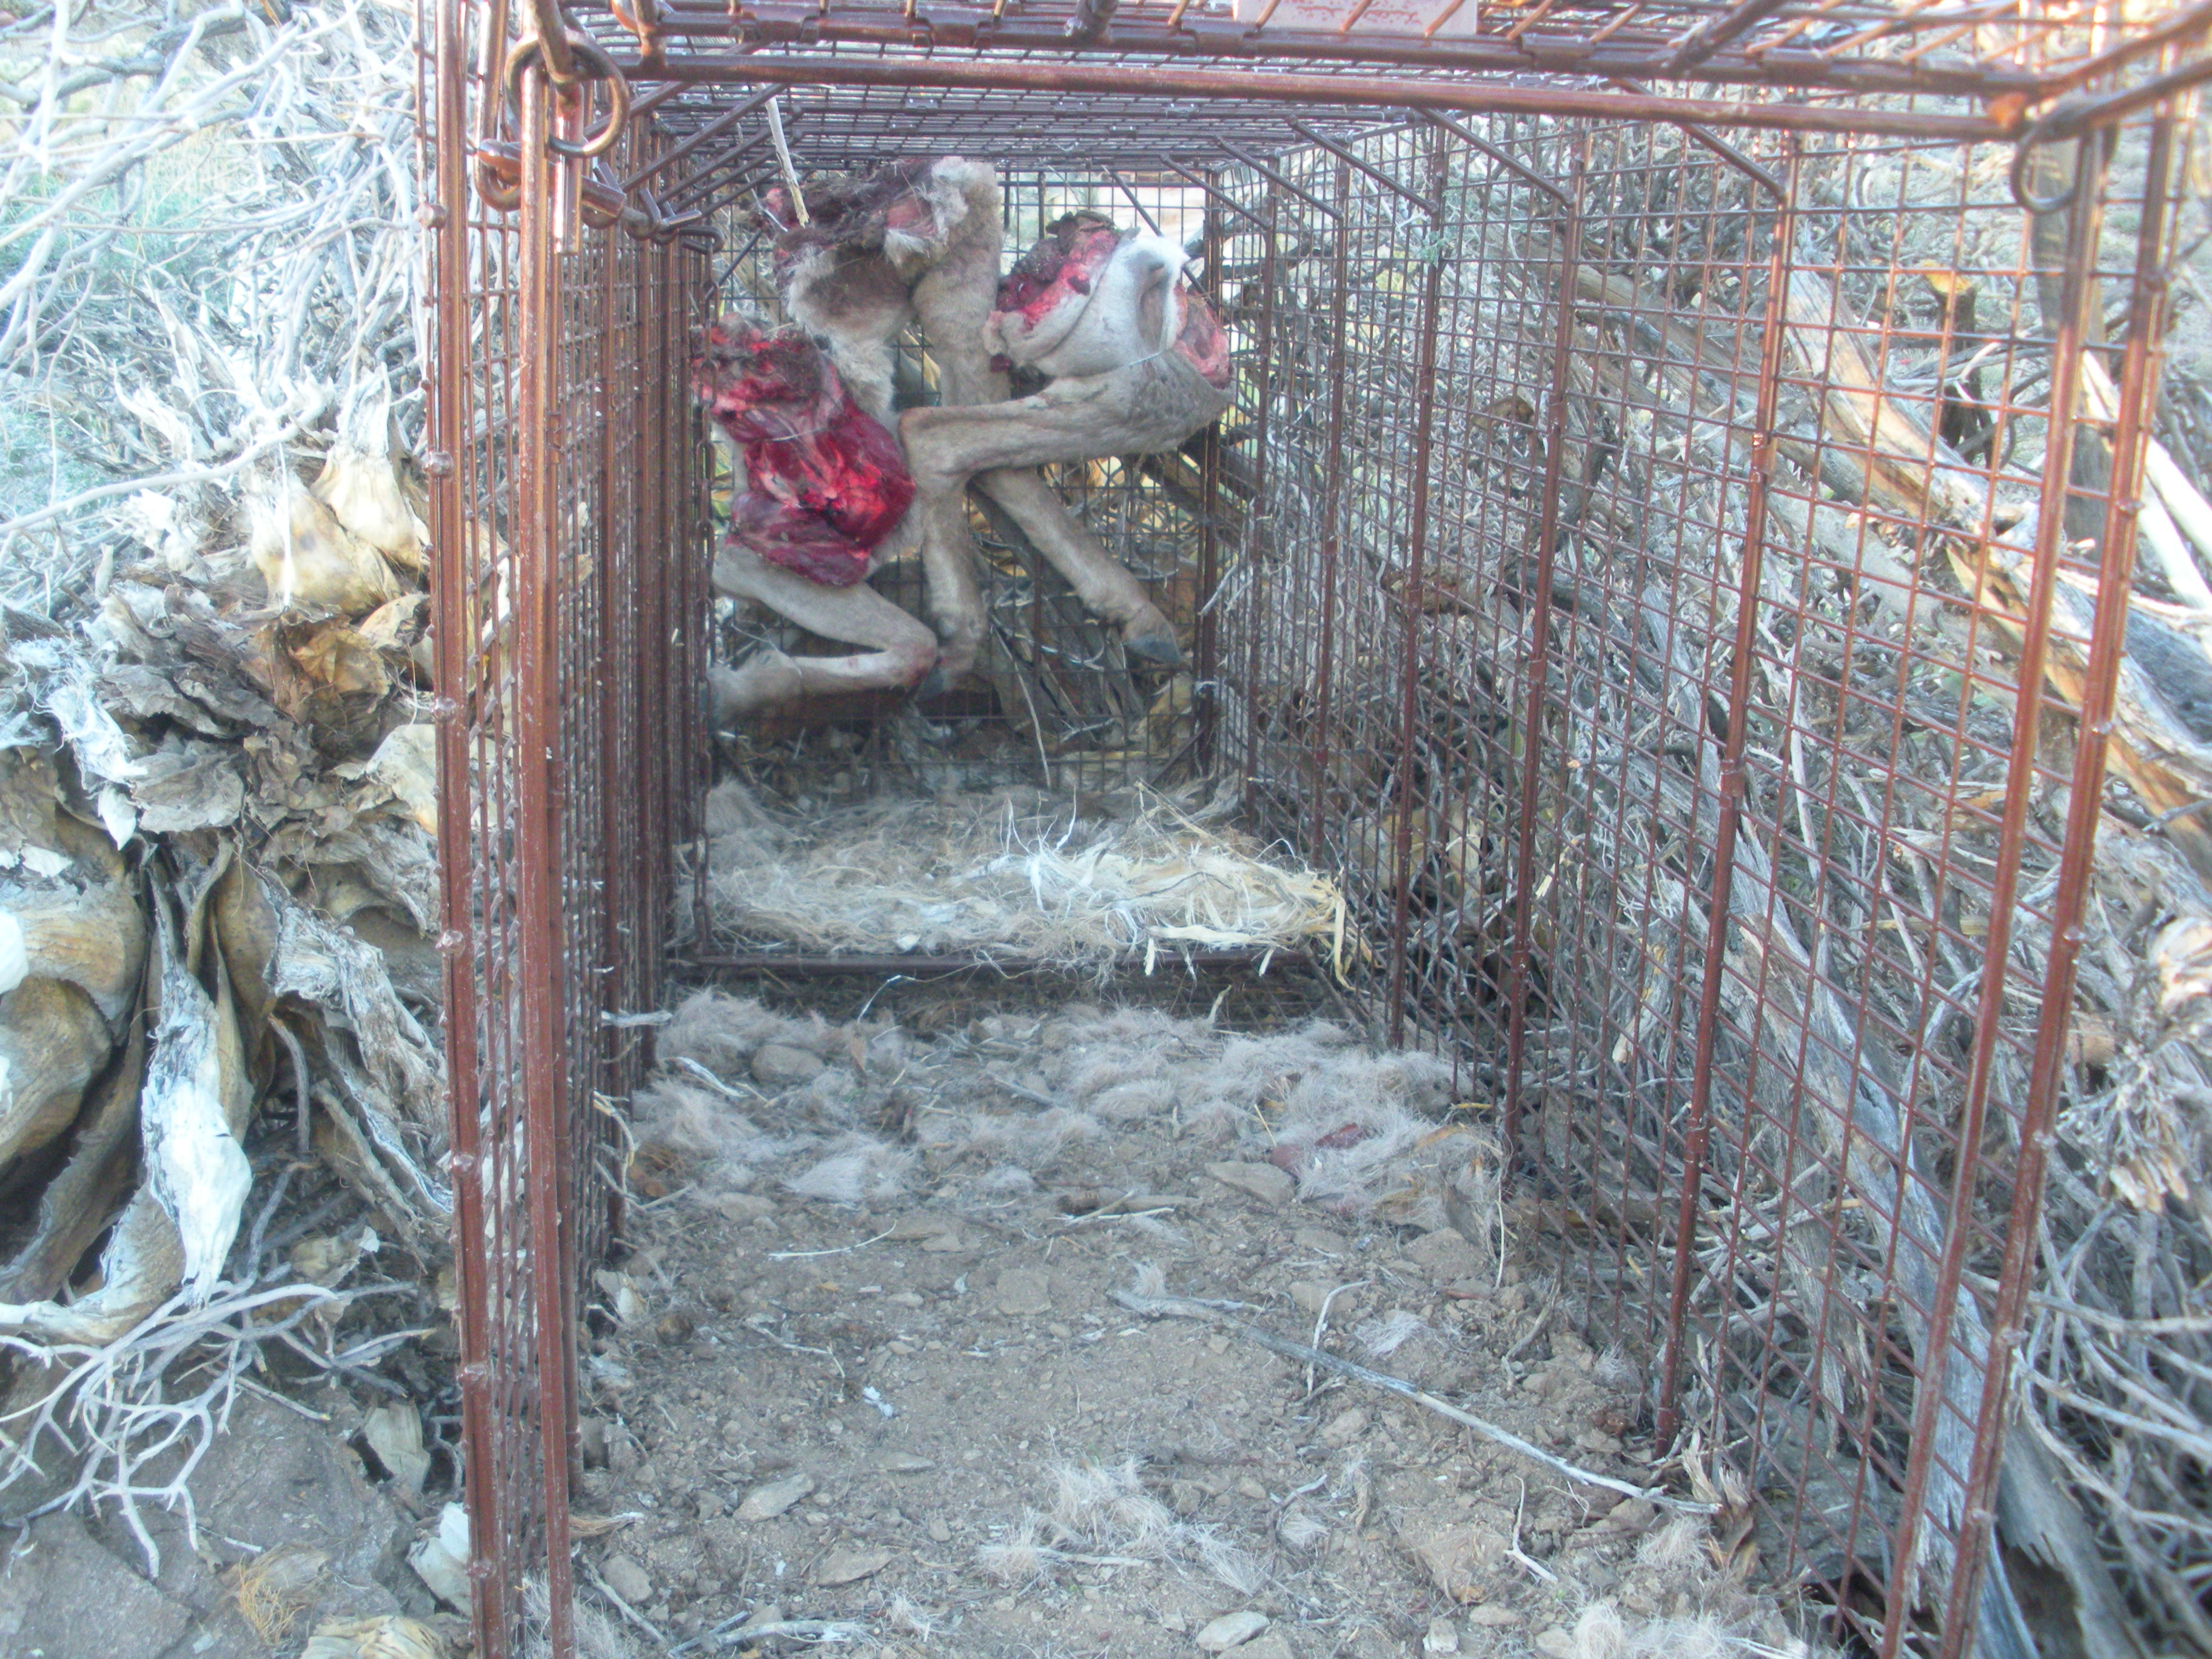 Build Deer Trap http://naturalskills.wordpress.com/2011/02/03/cougar-trappin/